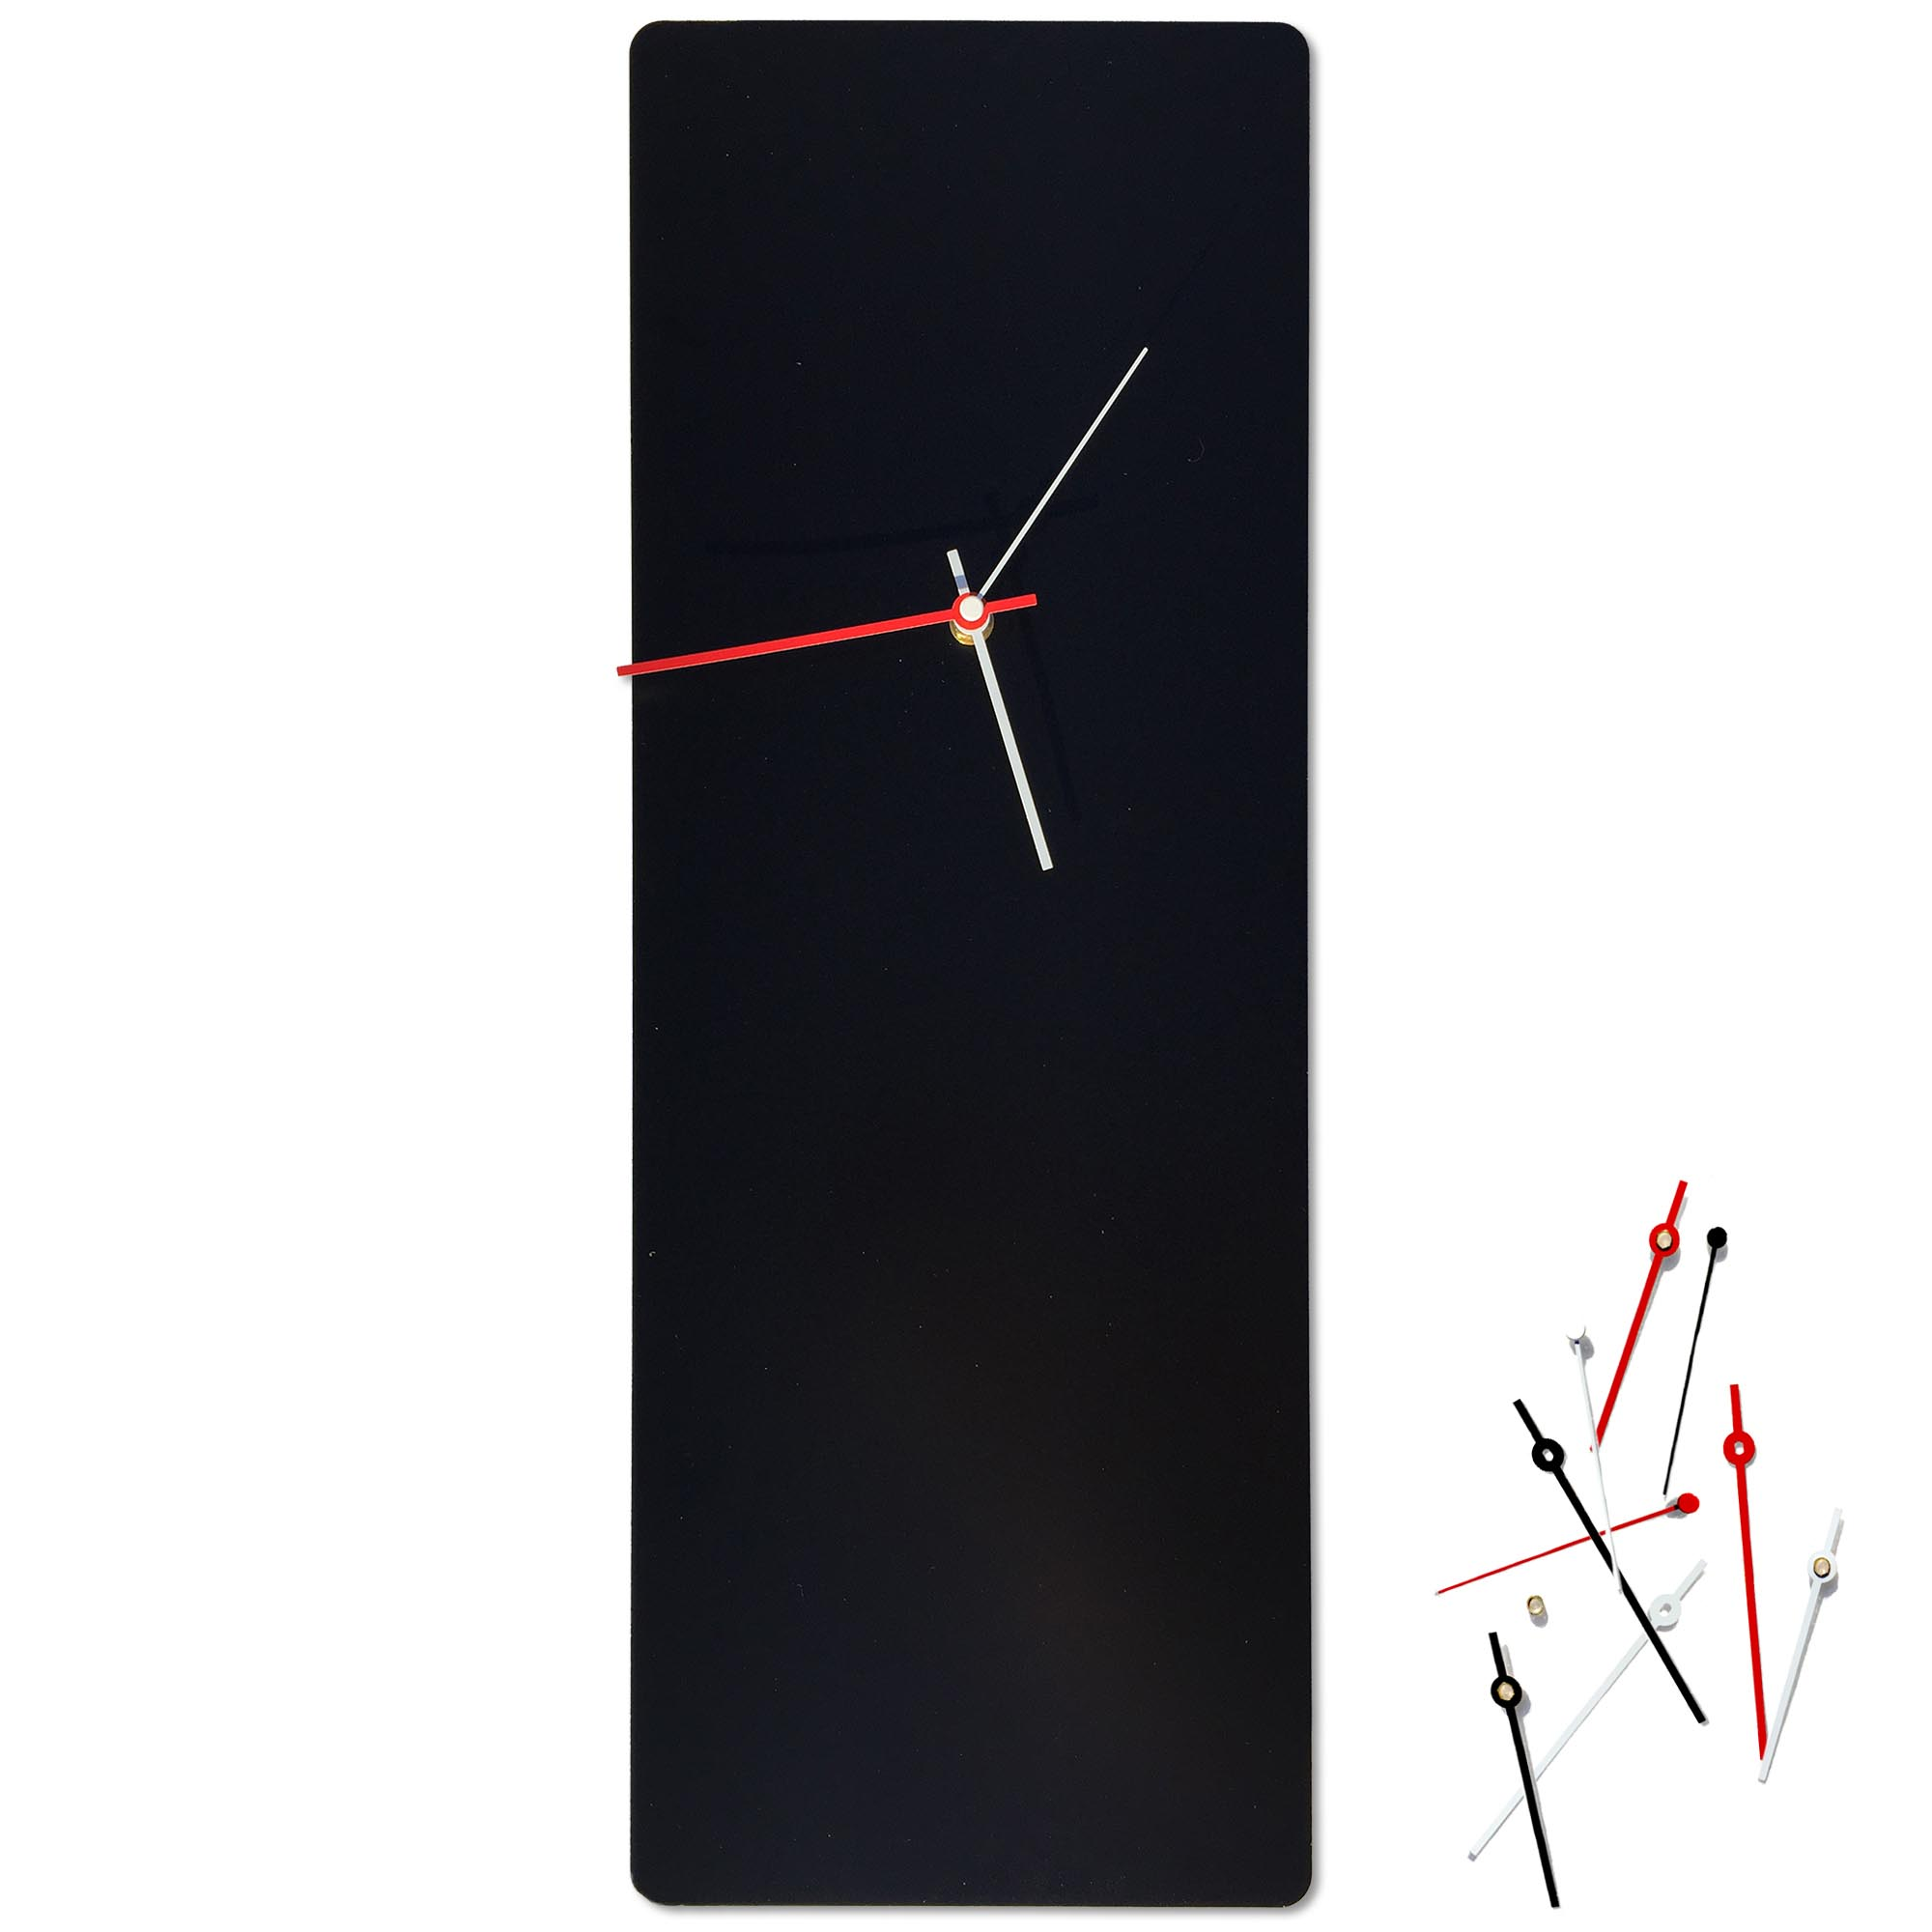 Metal Art Studio Minimalistic Decor Black Mod Clock Large 8.25in x 22in